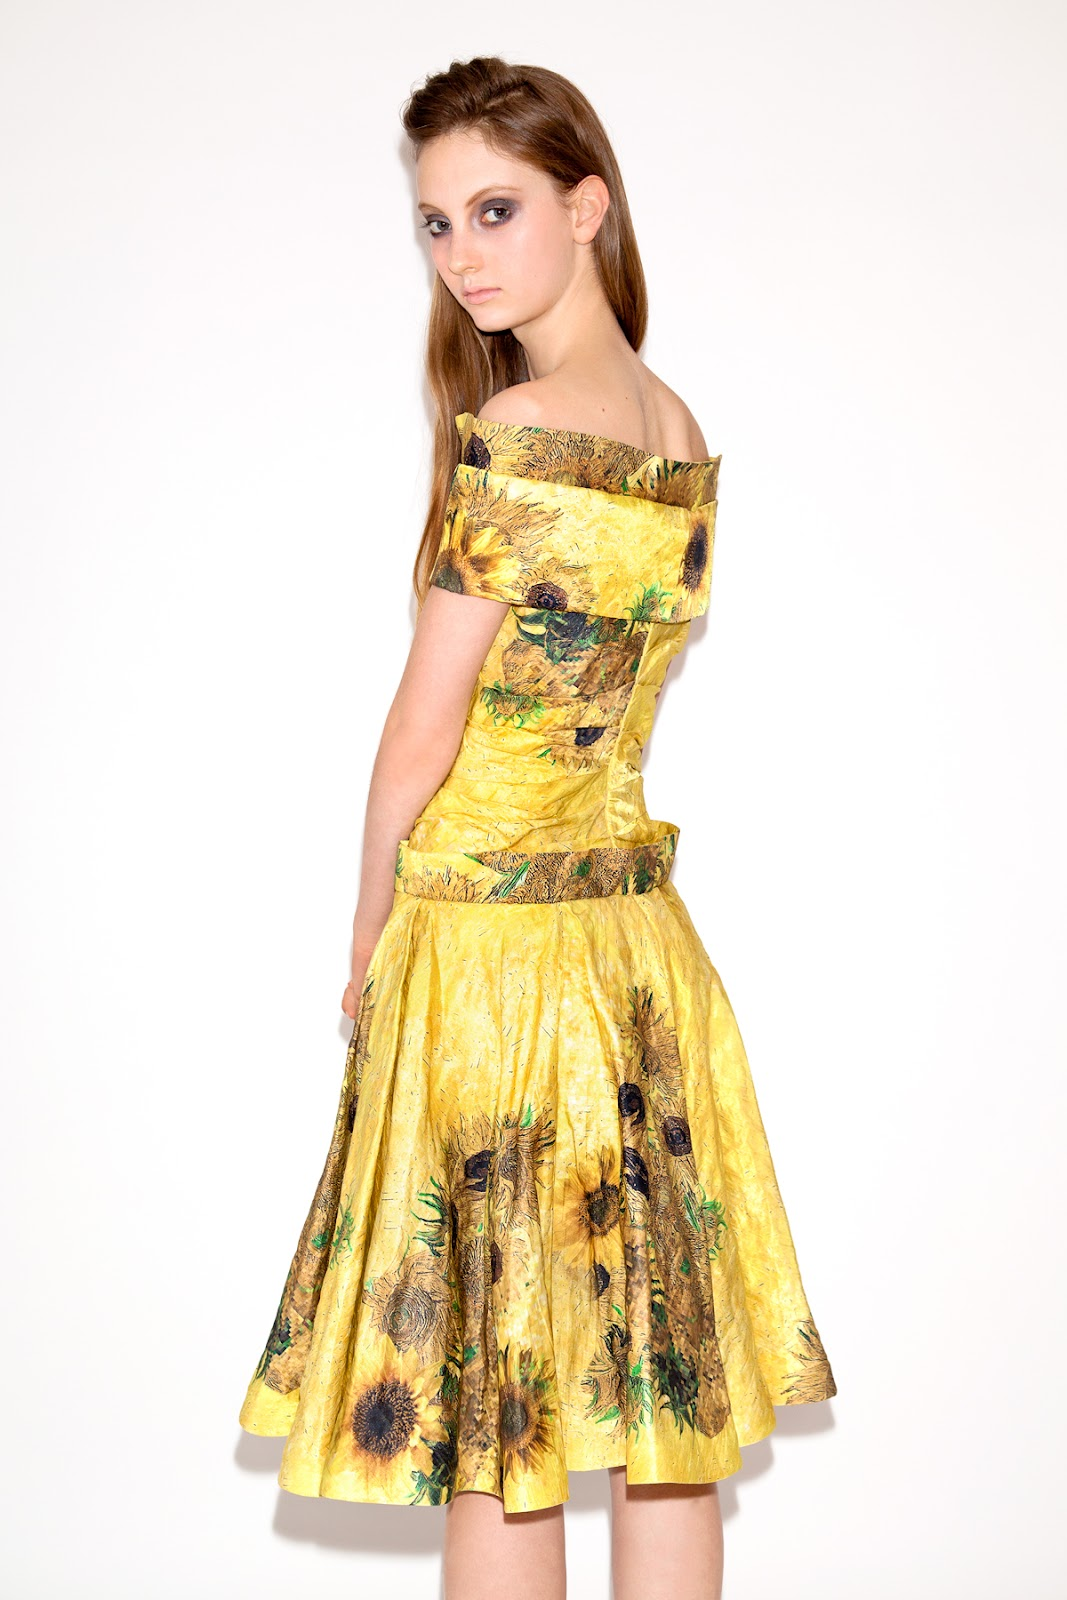 Sunflower Print Dress Fashion In New Look